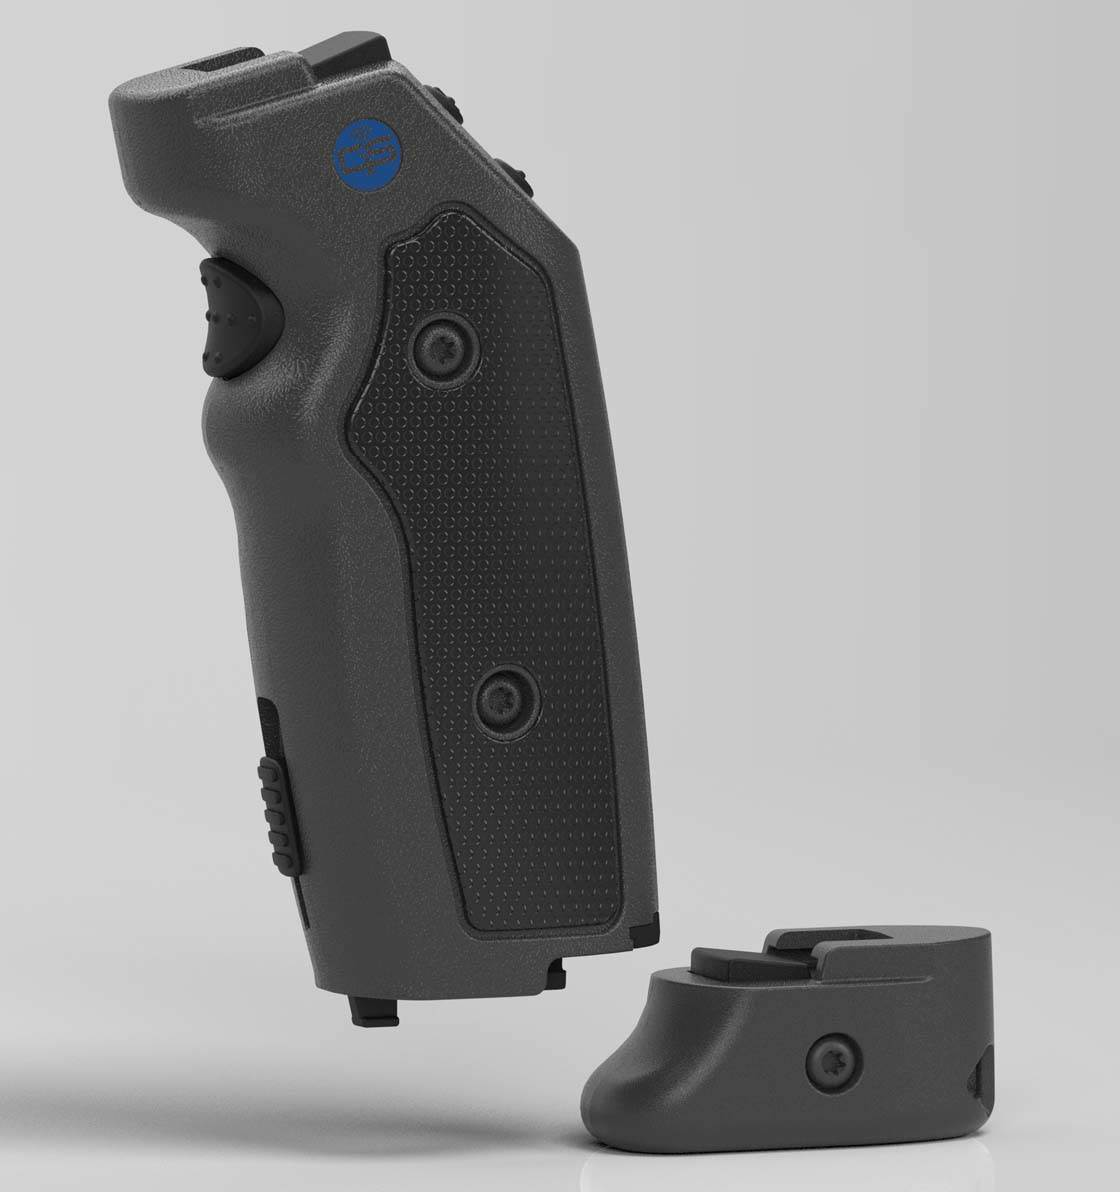 iPhone Grip And Shoot Accessory 11 no script